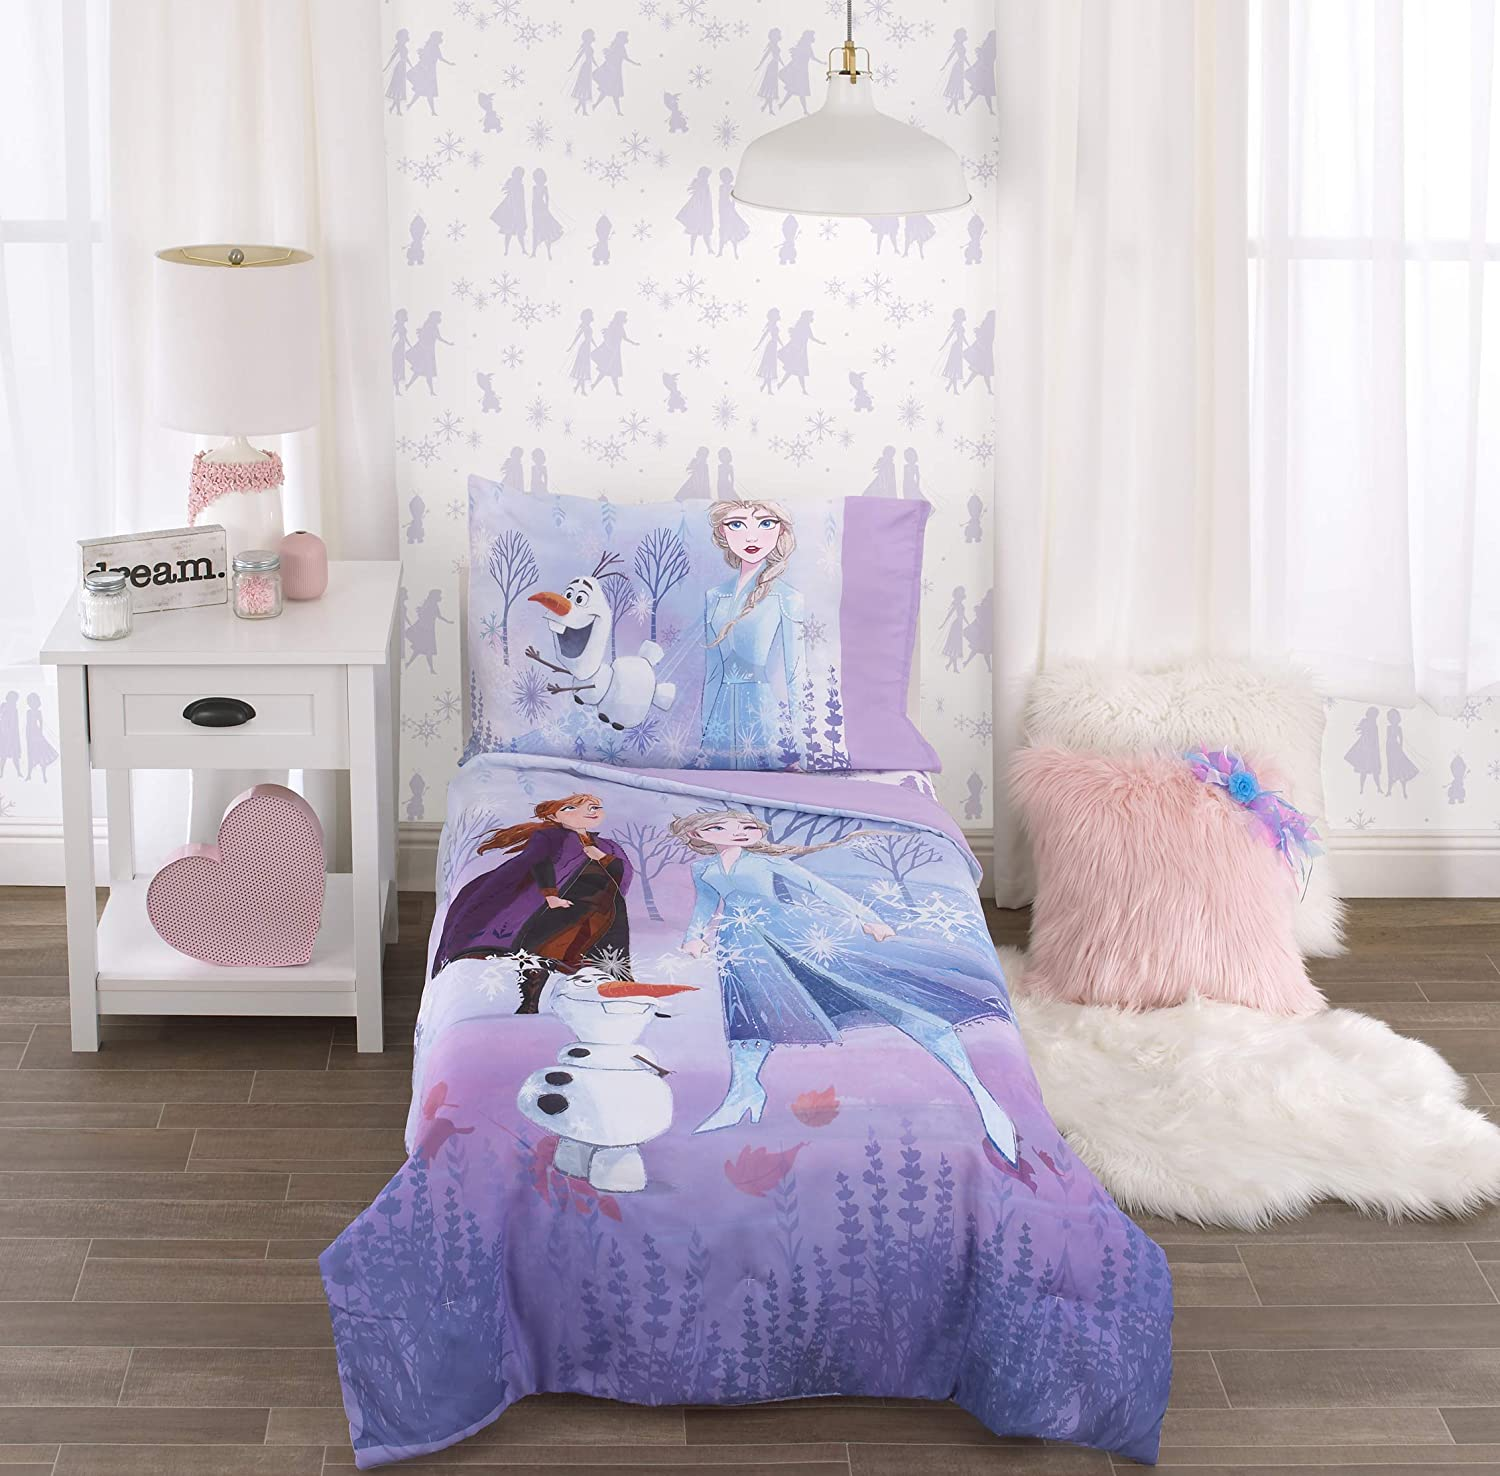 Disney Frozen 2 Kid's Bed Set